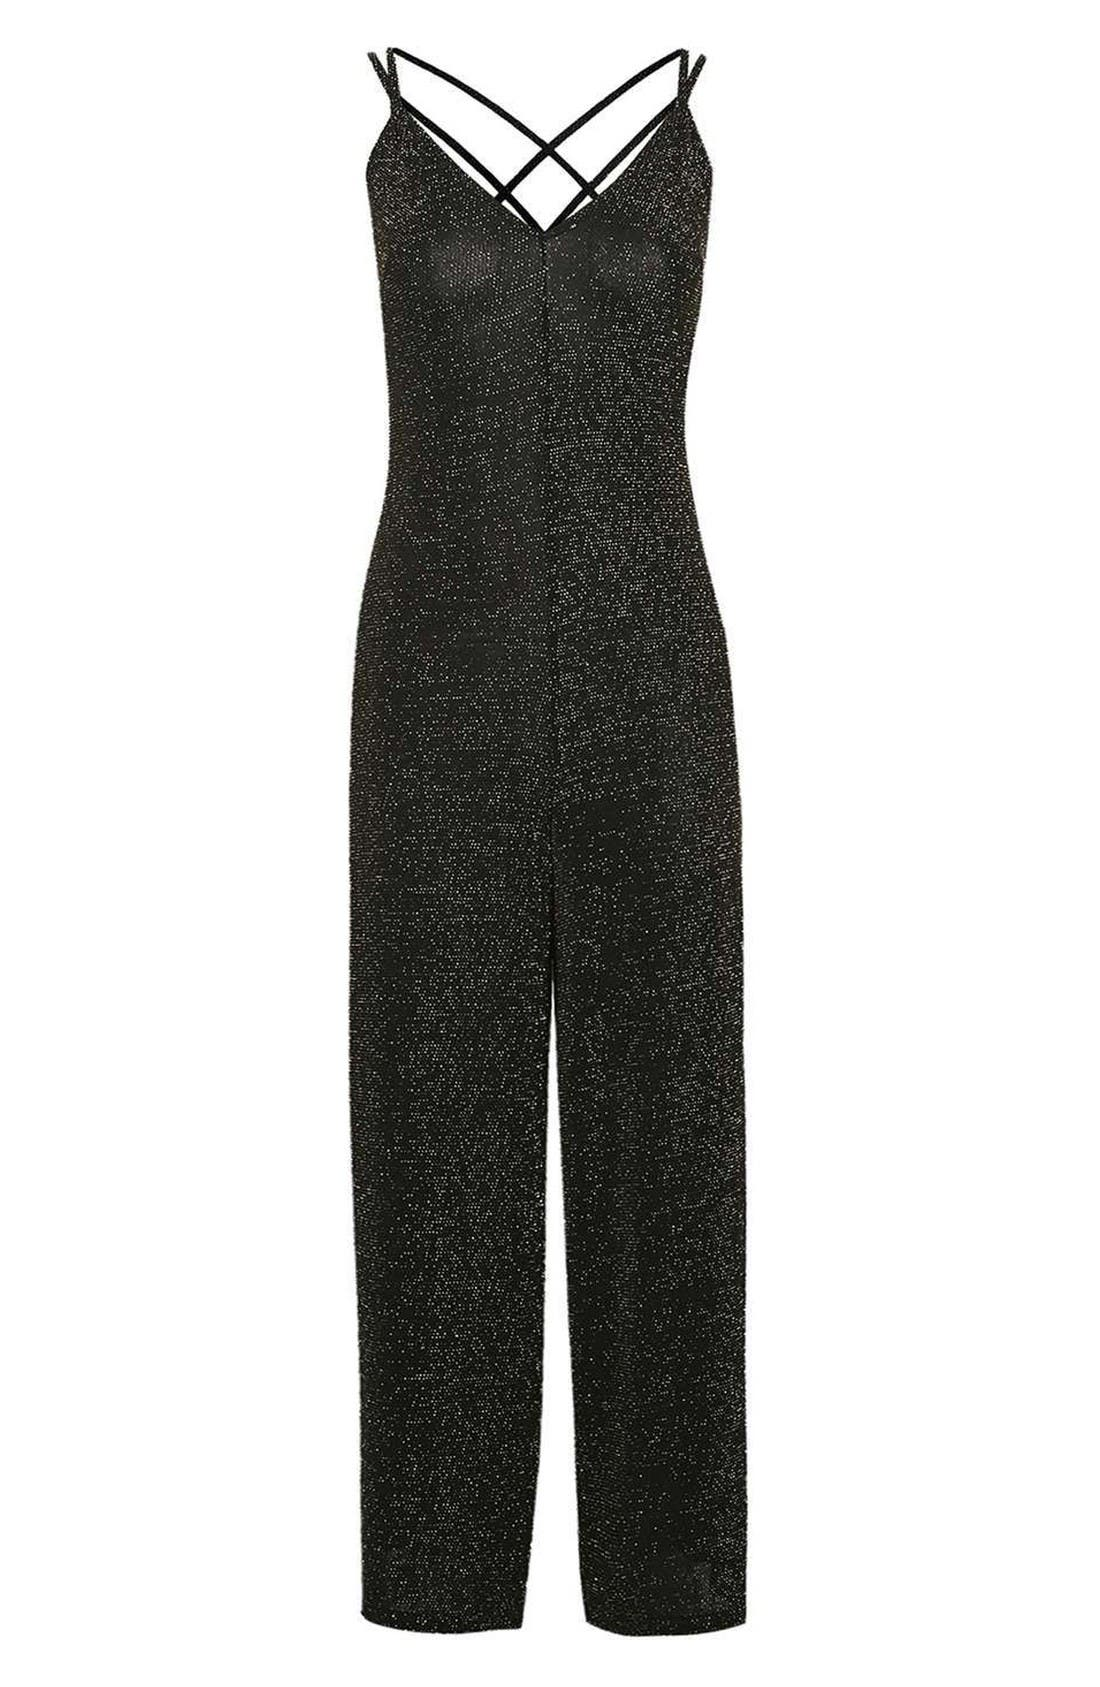 Alternate Image 3  - Topshop Glitter Jumpsuit